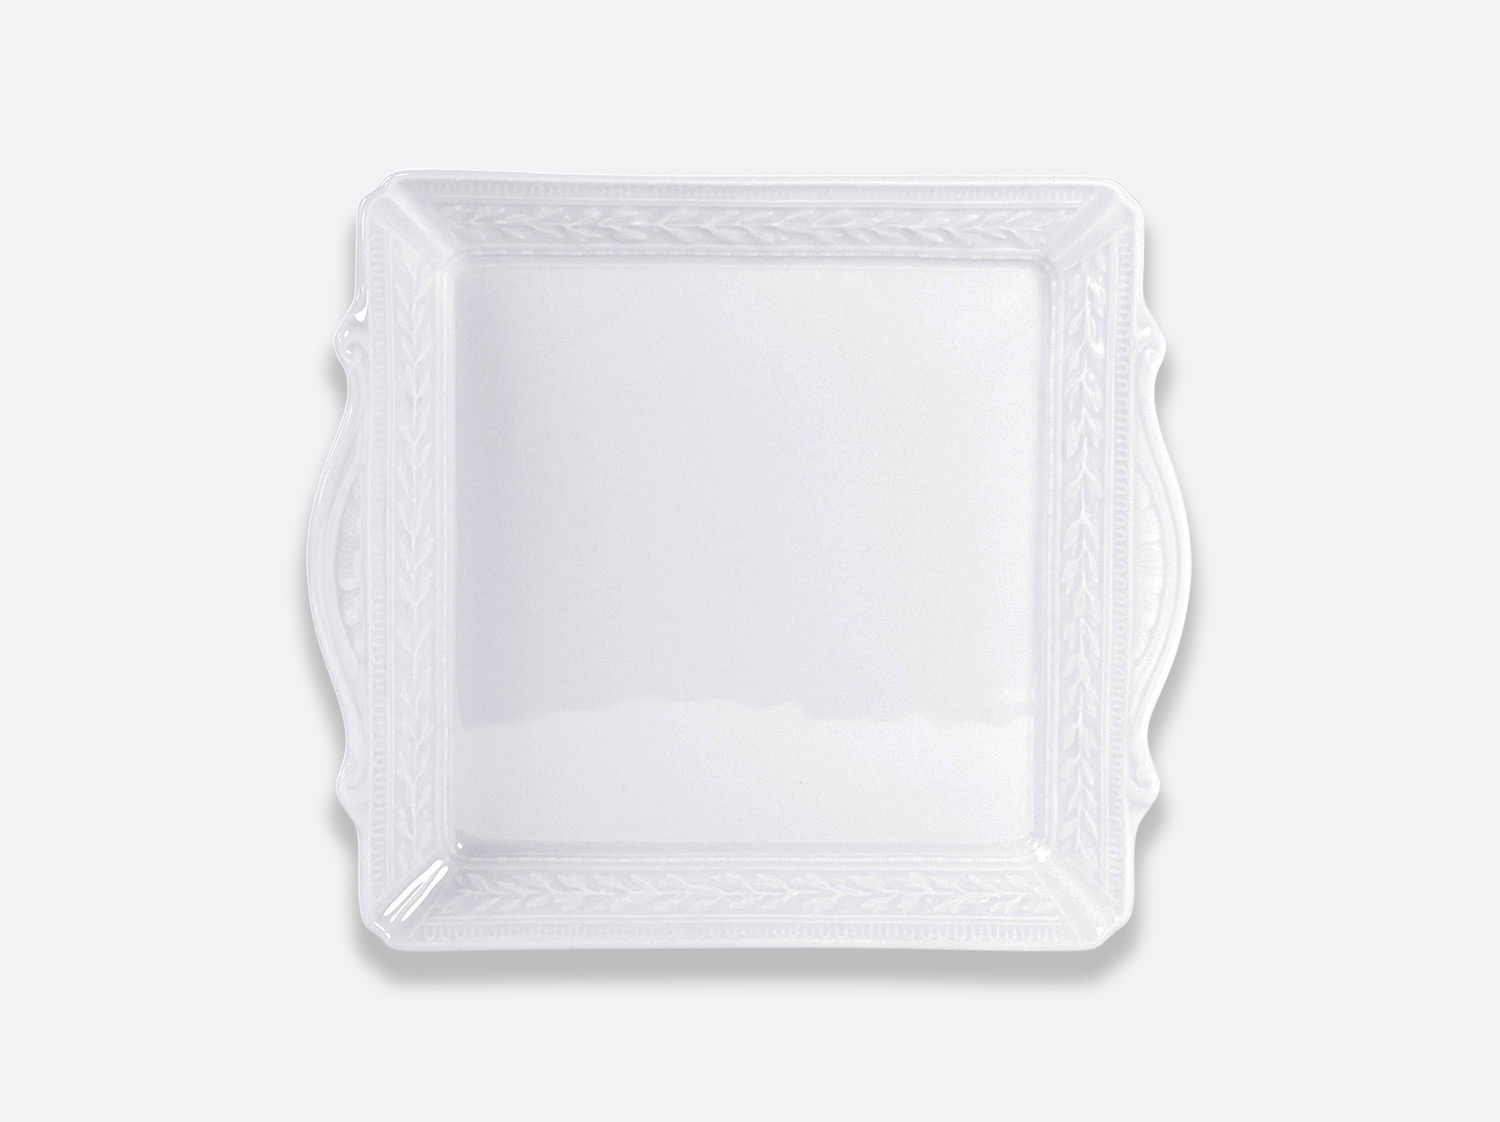 "China Square handled tray 9.5"" x 9.5"" of the collection Louvre 